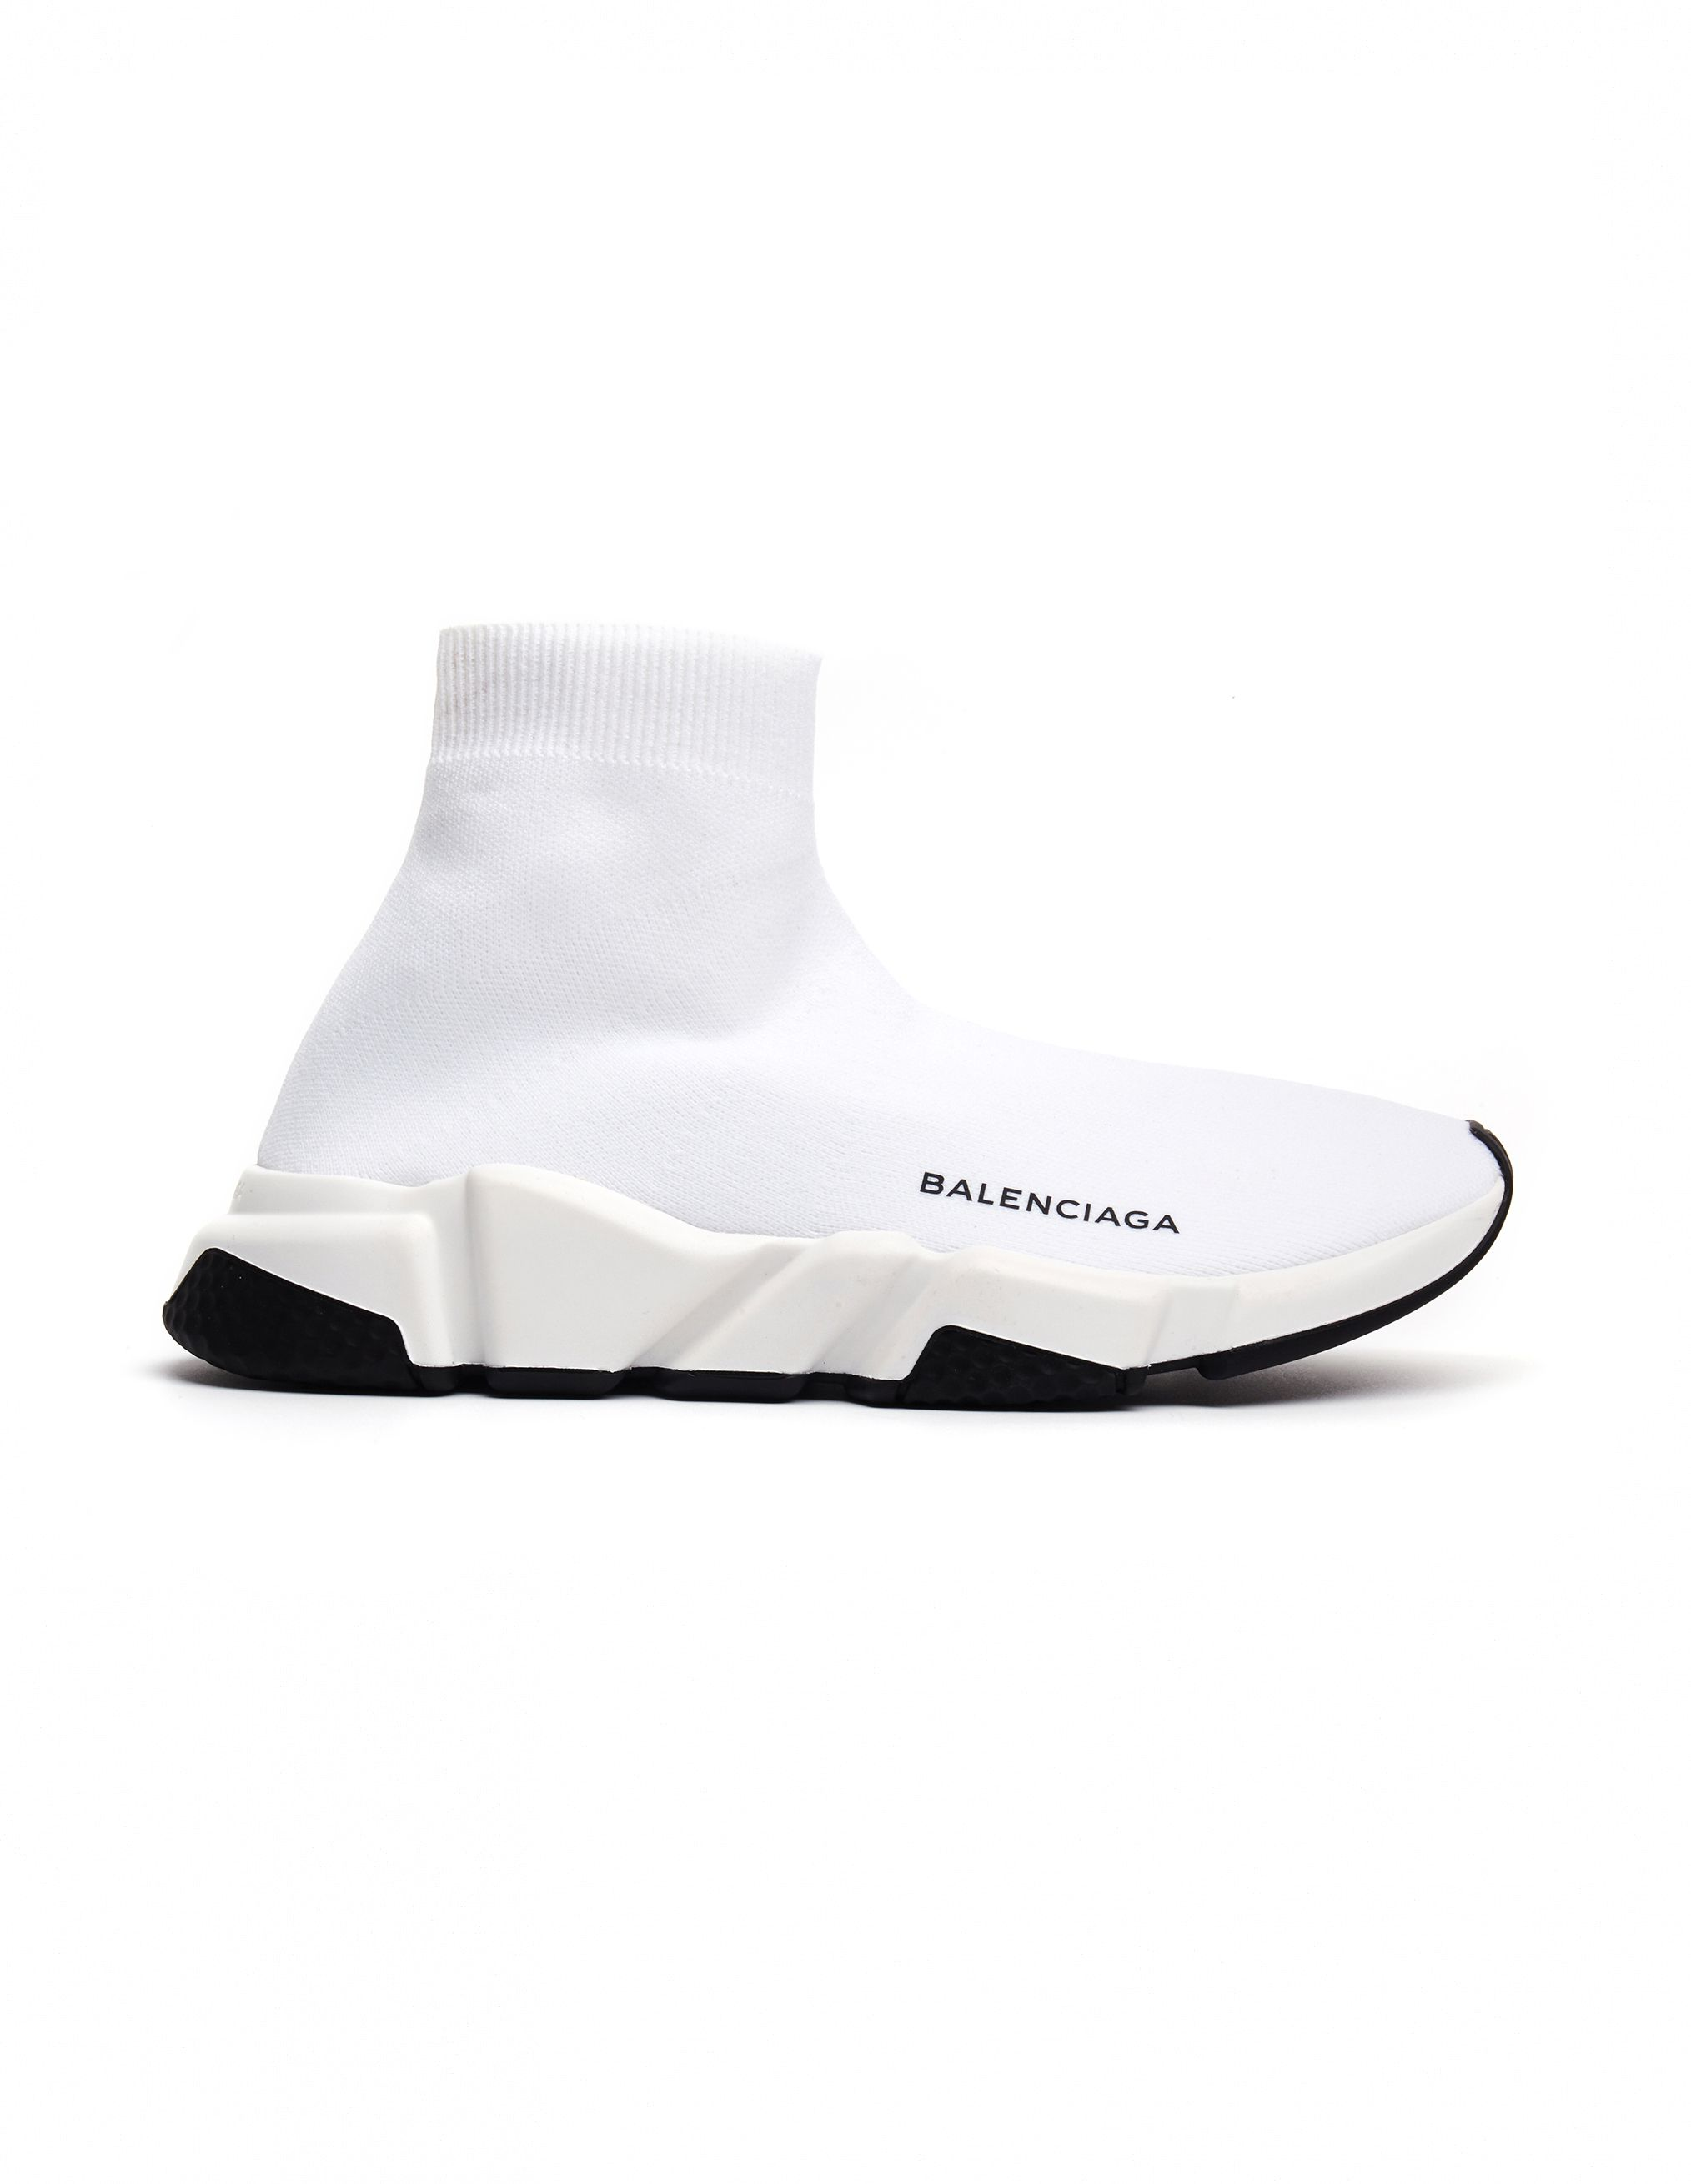 White Speed Trainer sneakers by Balenciaga — SVMoscow 9d86d80d53